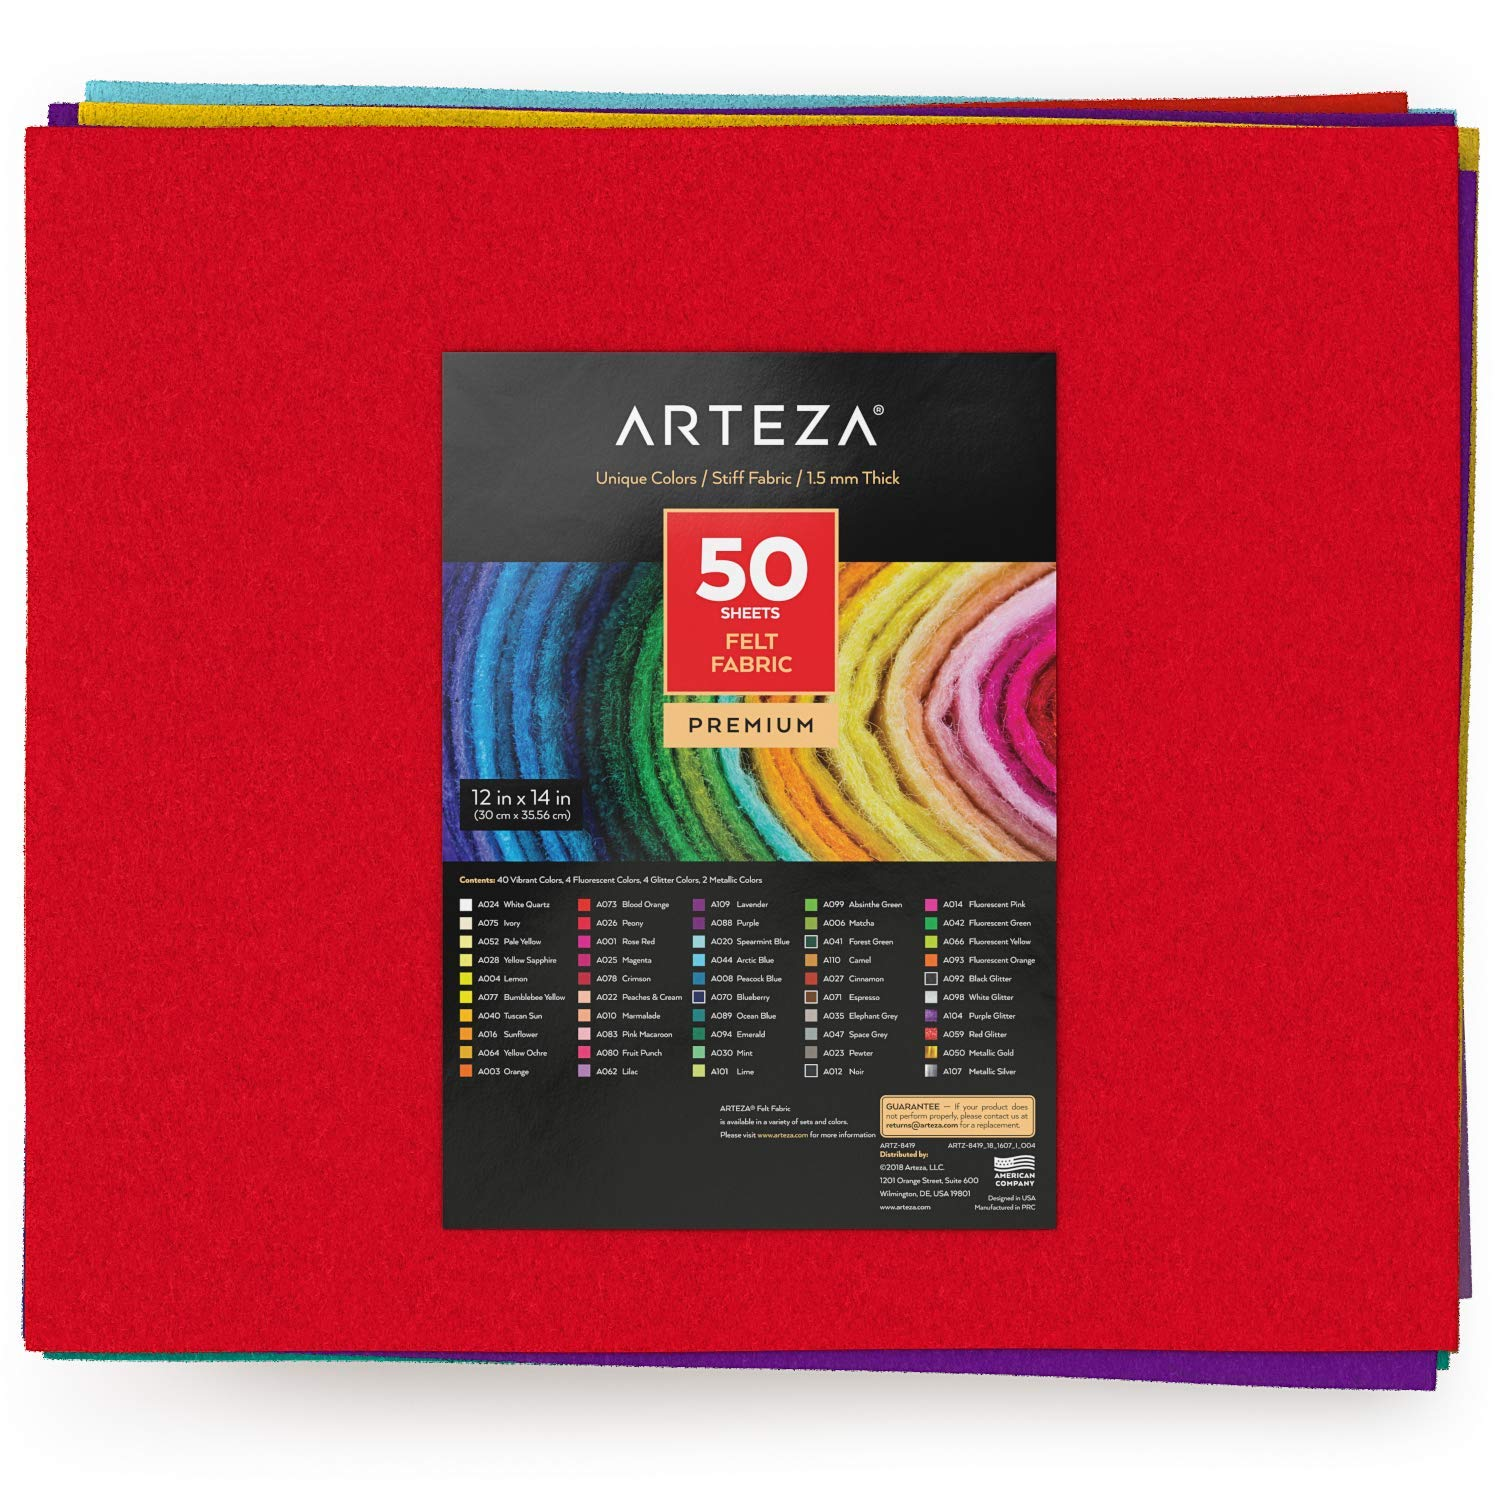 ARTEZA 50 Assorted Stiff Felt Fabric Sheets, 12''x14'' Squares, 1.5mm Thick for DIY Crafts, Sewing, Crafting Projects by ARTEZA (Image #4)